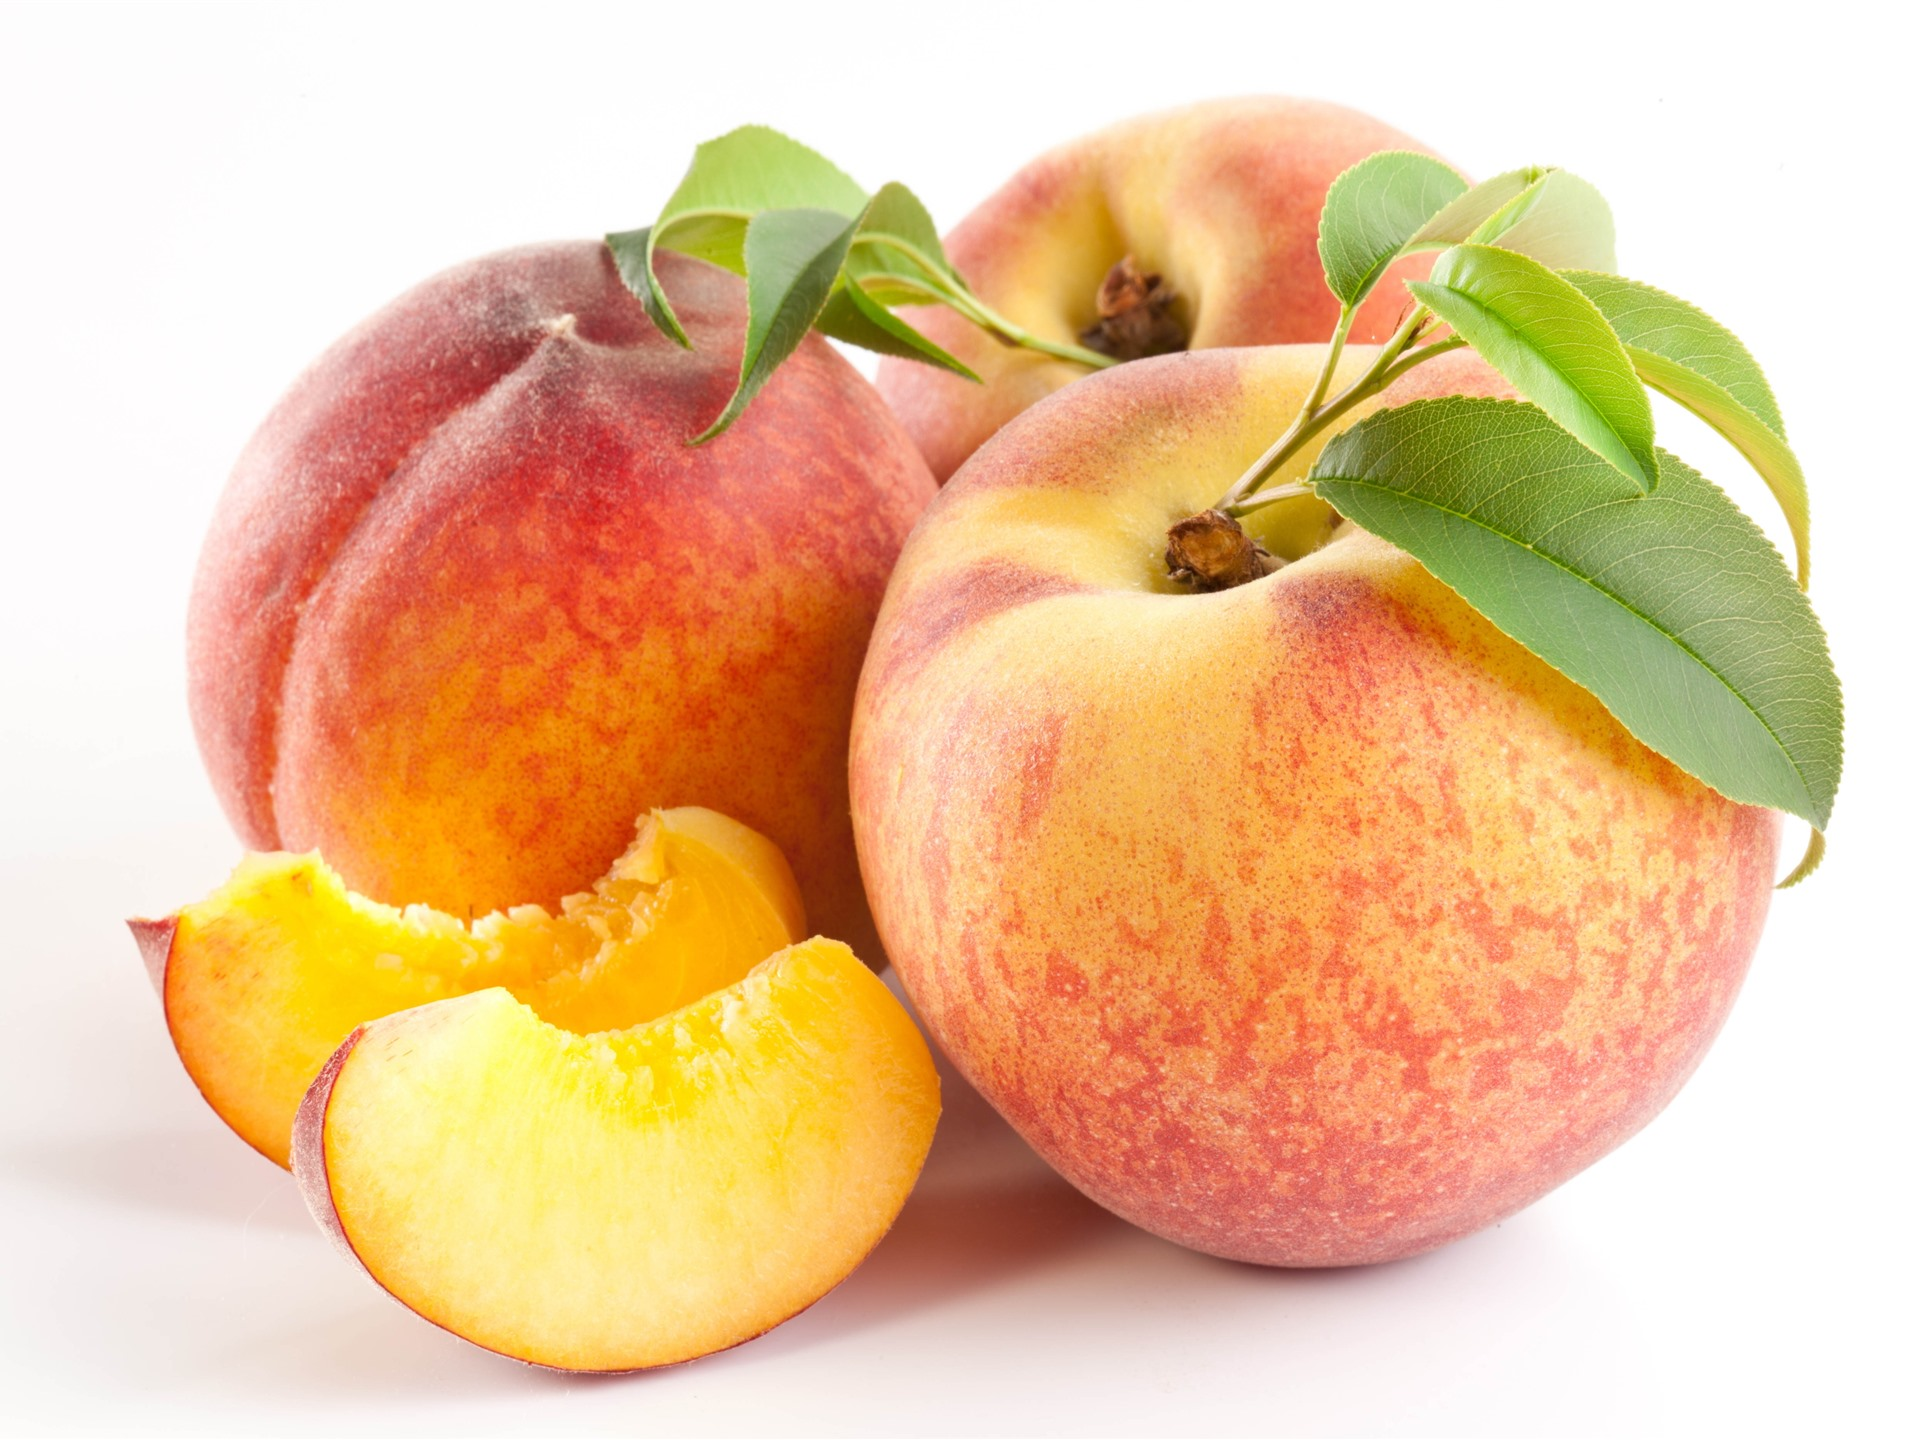 wallpaper peaches slice white background fruit 5120x2880 uhd 5k picture image wallpaper peaches slice white